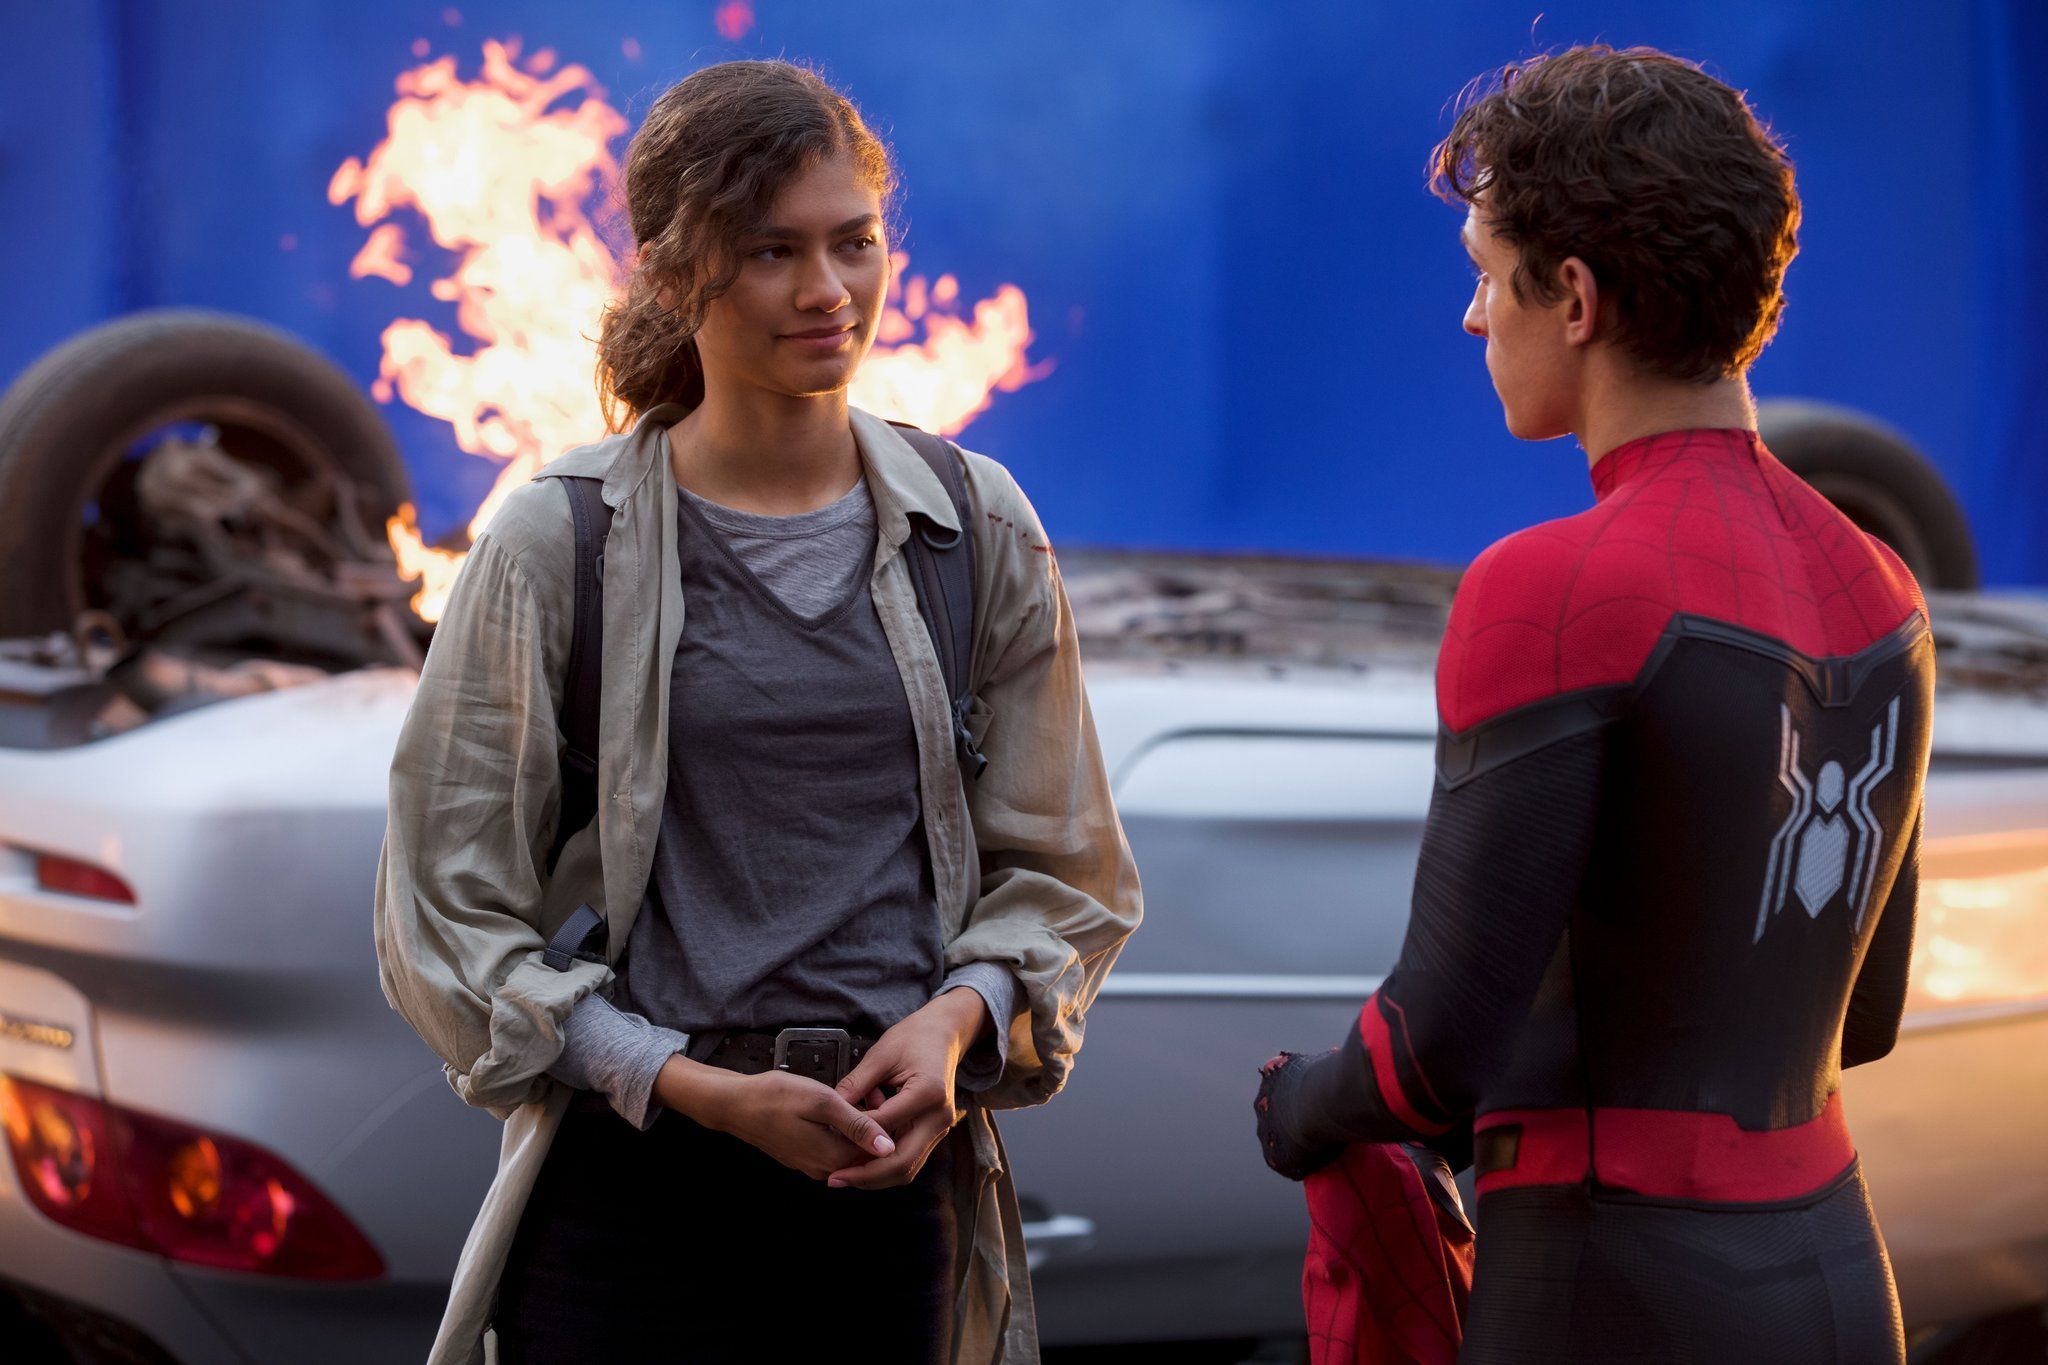 A New Photo From Behind The Scenes Of Spider Man Far From Home